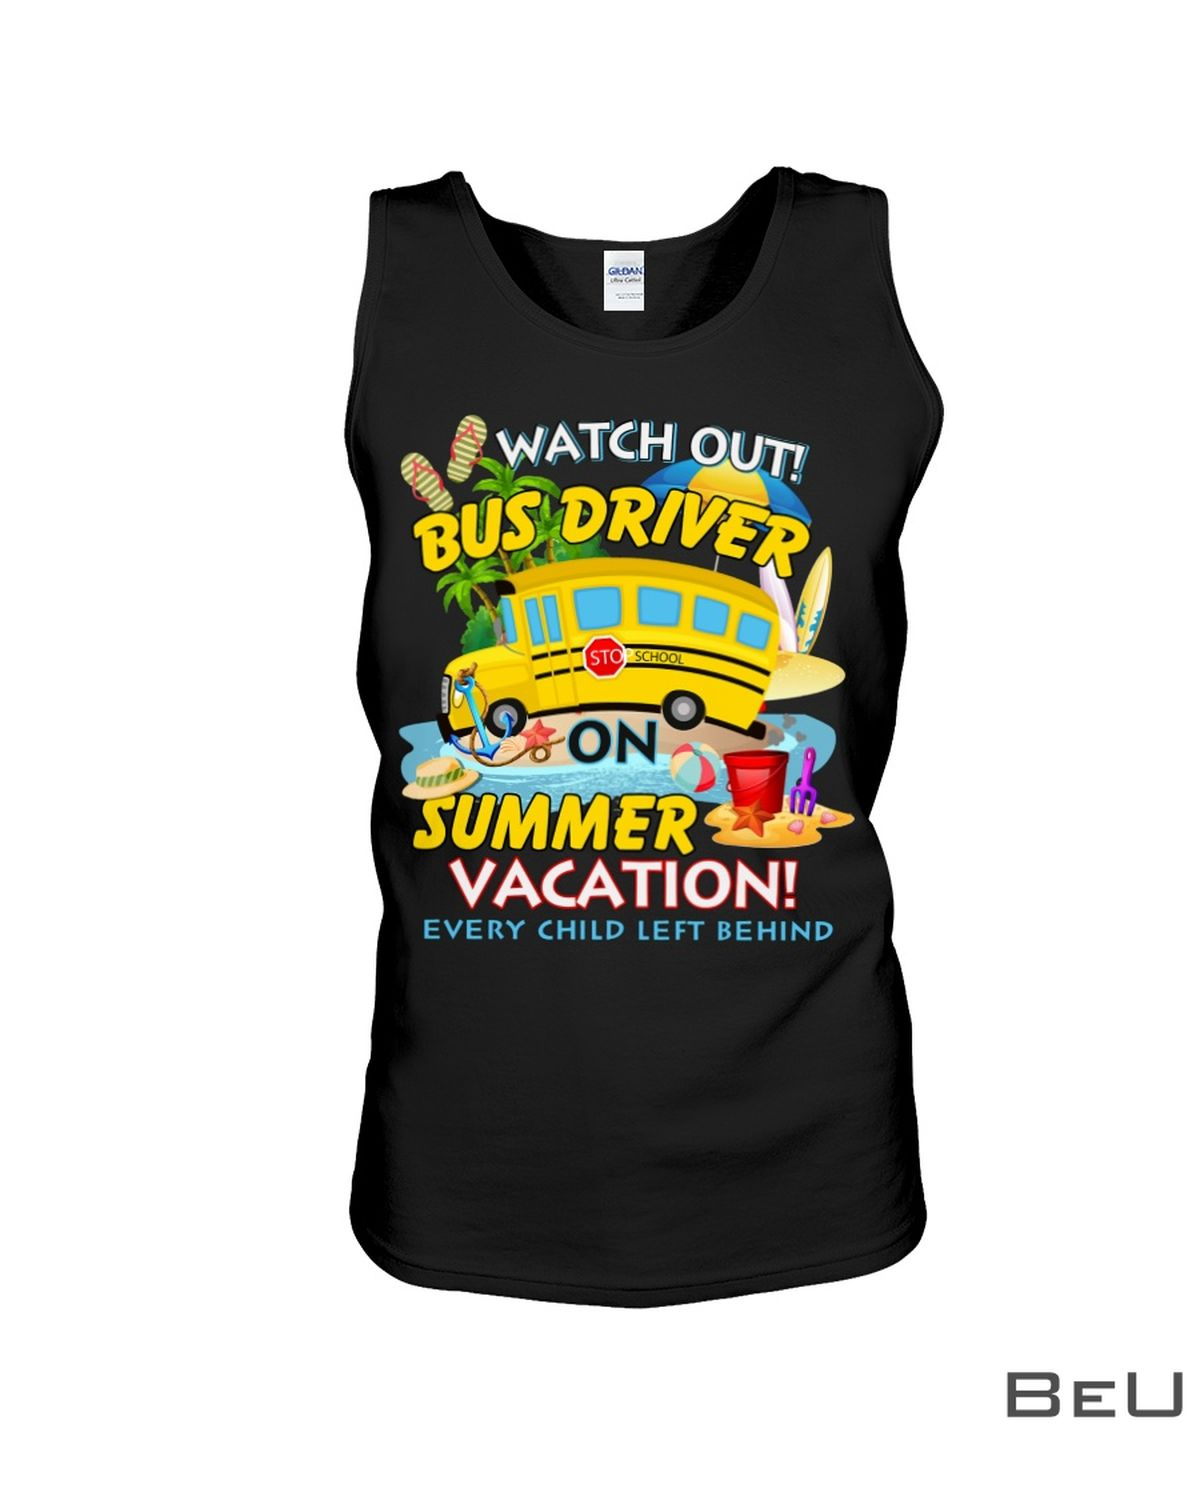 Watch Out Bus Driver On Summer Vacation Every Child Left Behind Shirtx